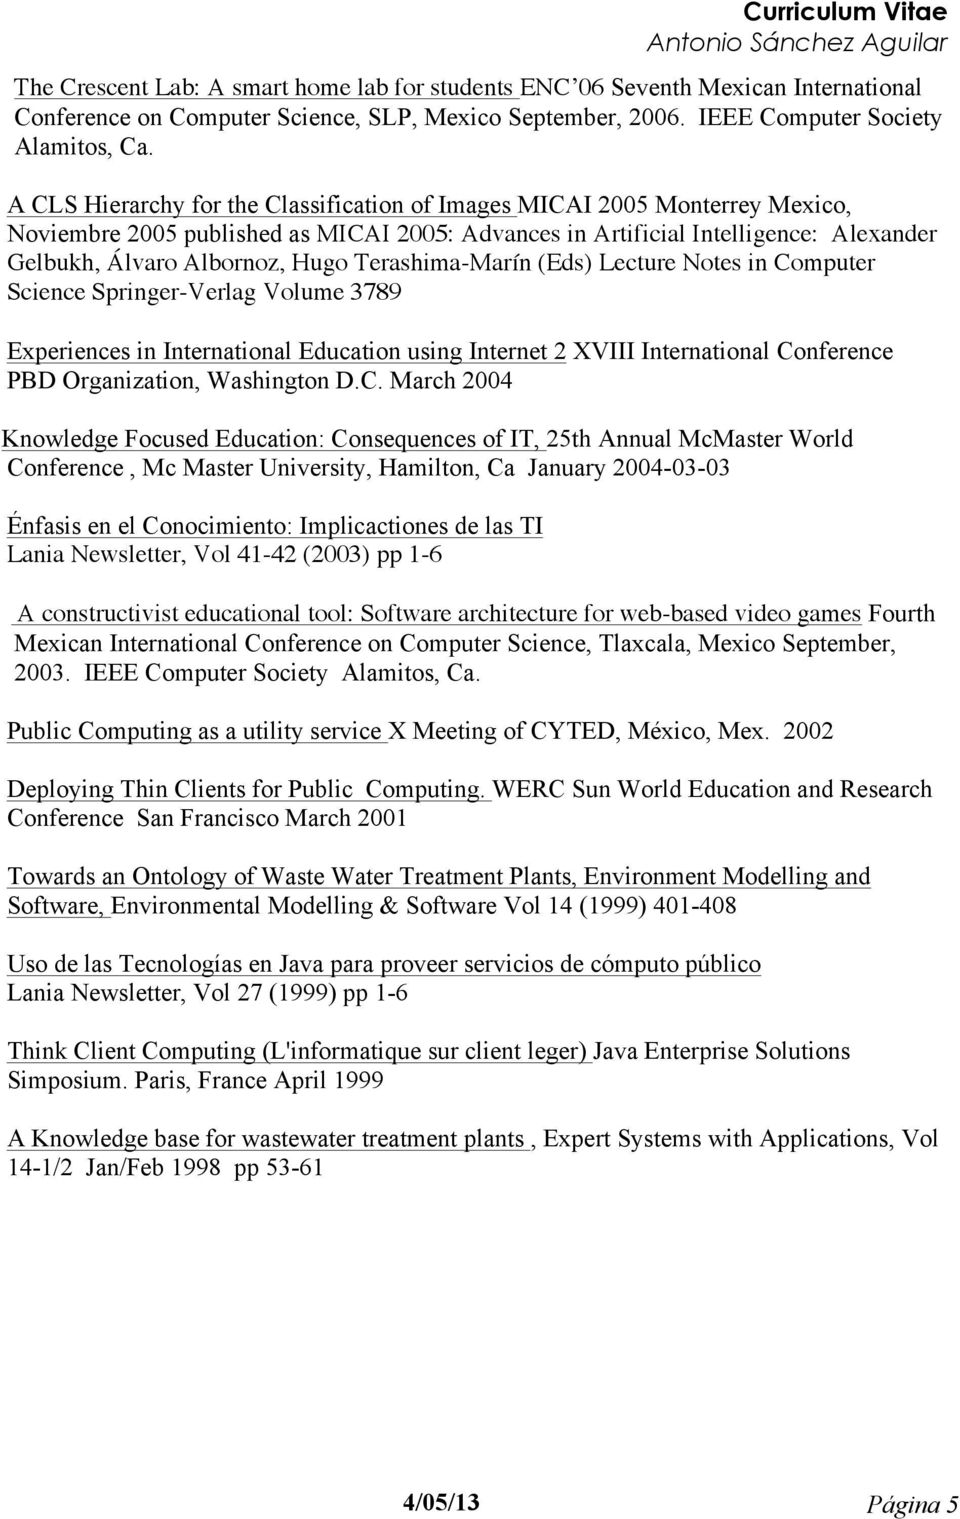 Terashima-Marín (Eds) Lecture Notes in Computer Science Springer-Verlag Volume 3789 Experiences in International Education using Internet 2 XVIII International Conference PBD Organization, Washington